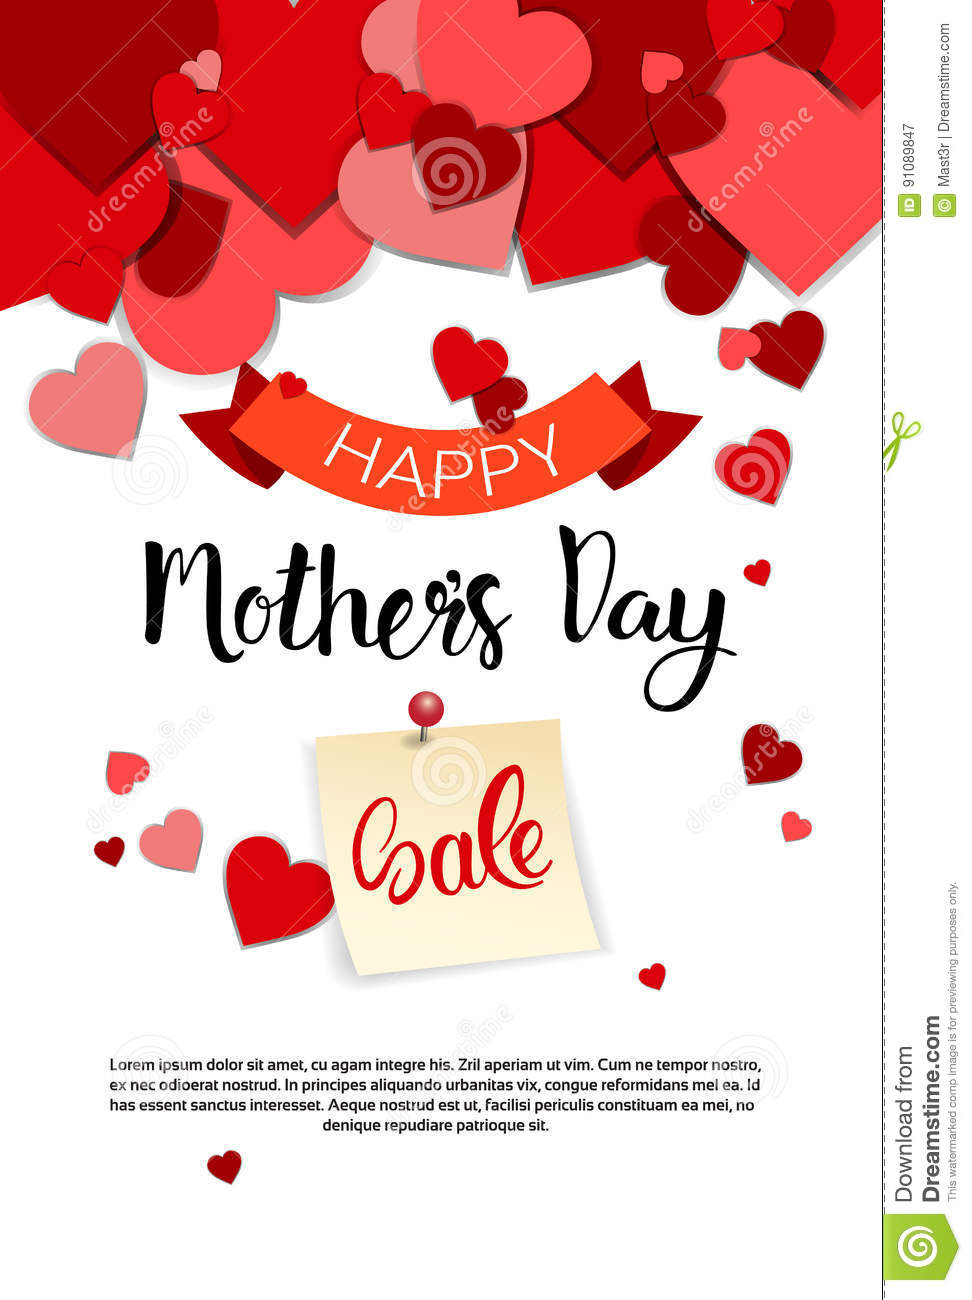 Shopping Sale Happy Mother Day Discount Spring Holiday Greeting